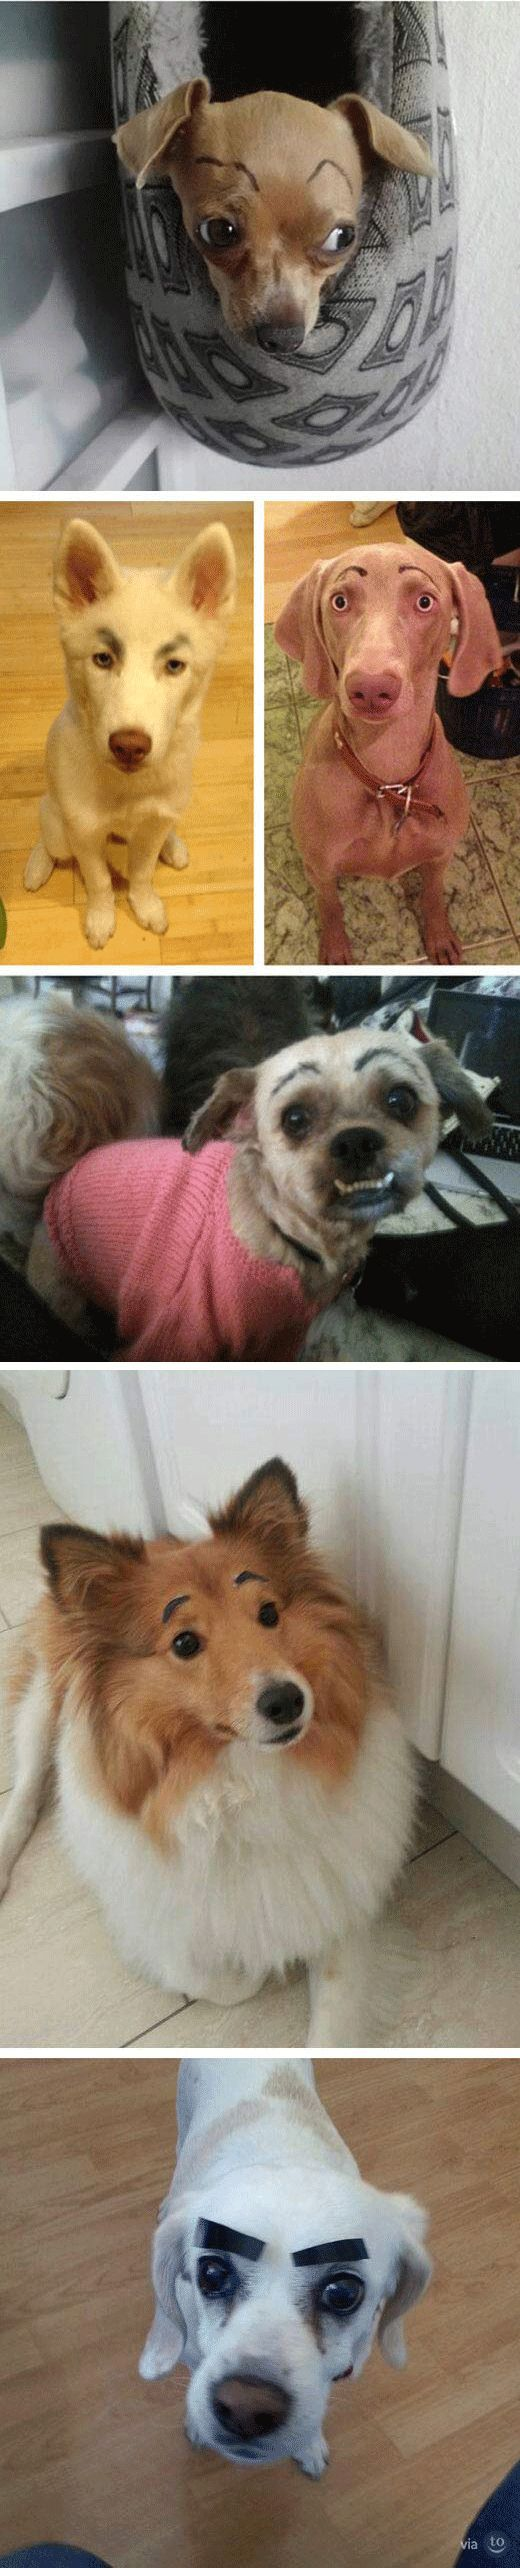 funny-dogs-eyebrows-puppy